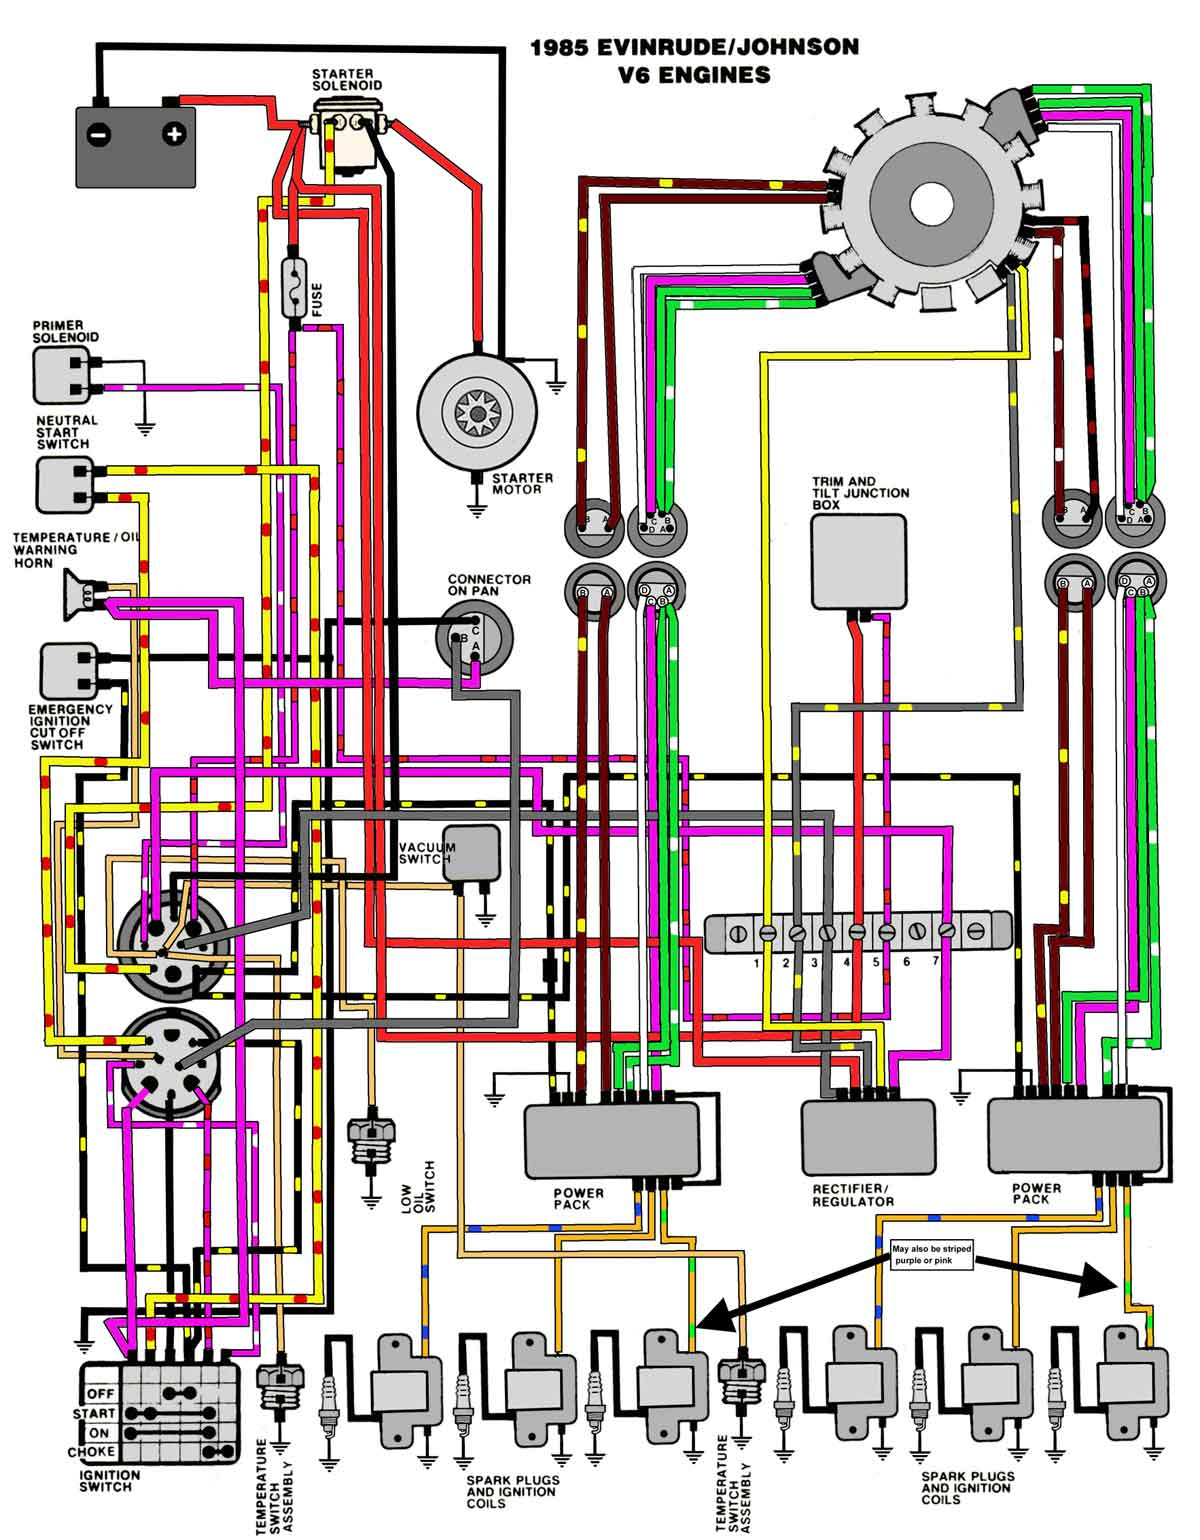 85_V6 mastertech marine evinrude johnson outboard wiring diagrams wiring diagram for 30 hp johnson motor at eliteediting.co